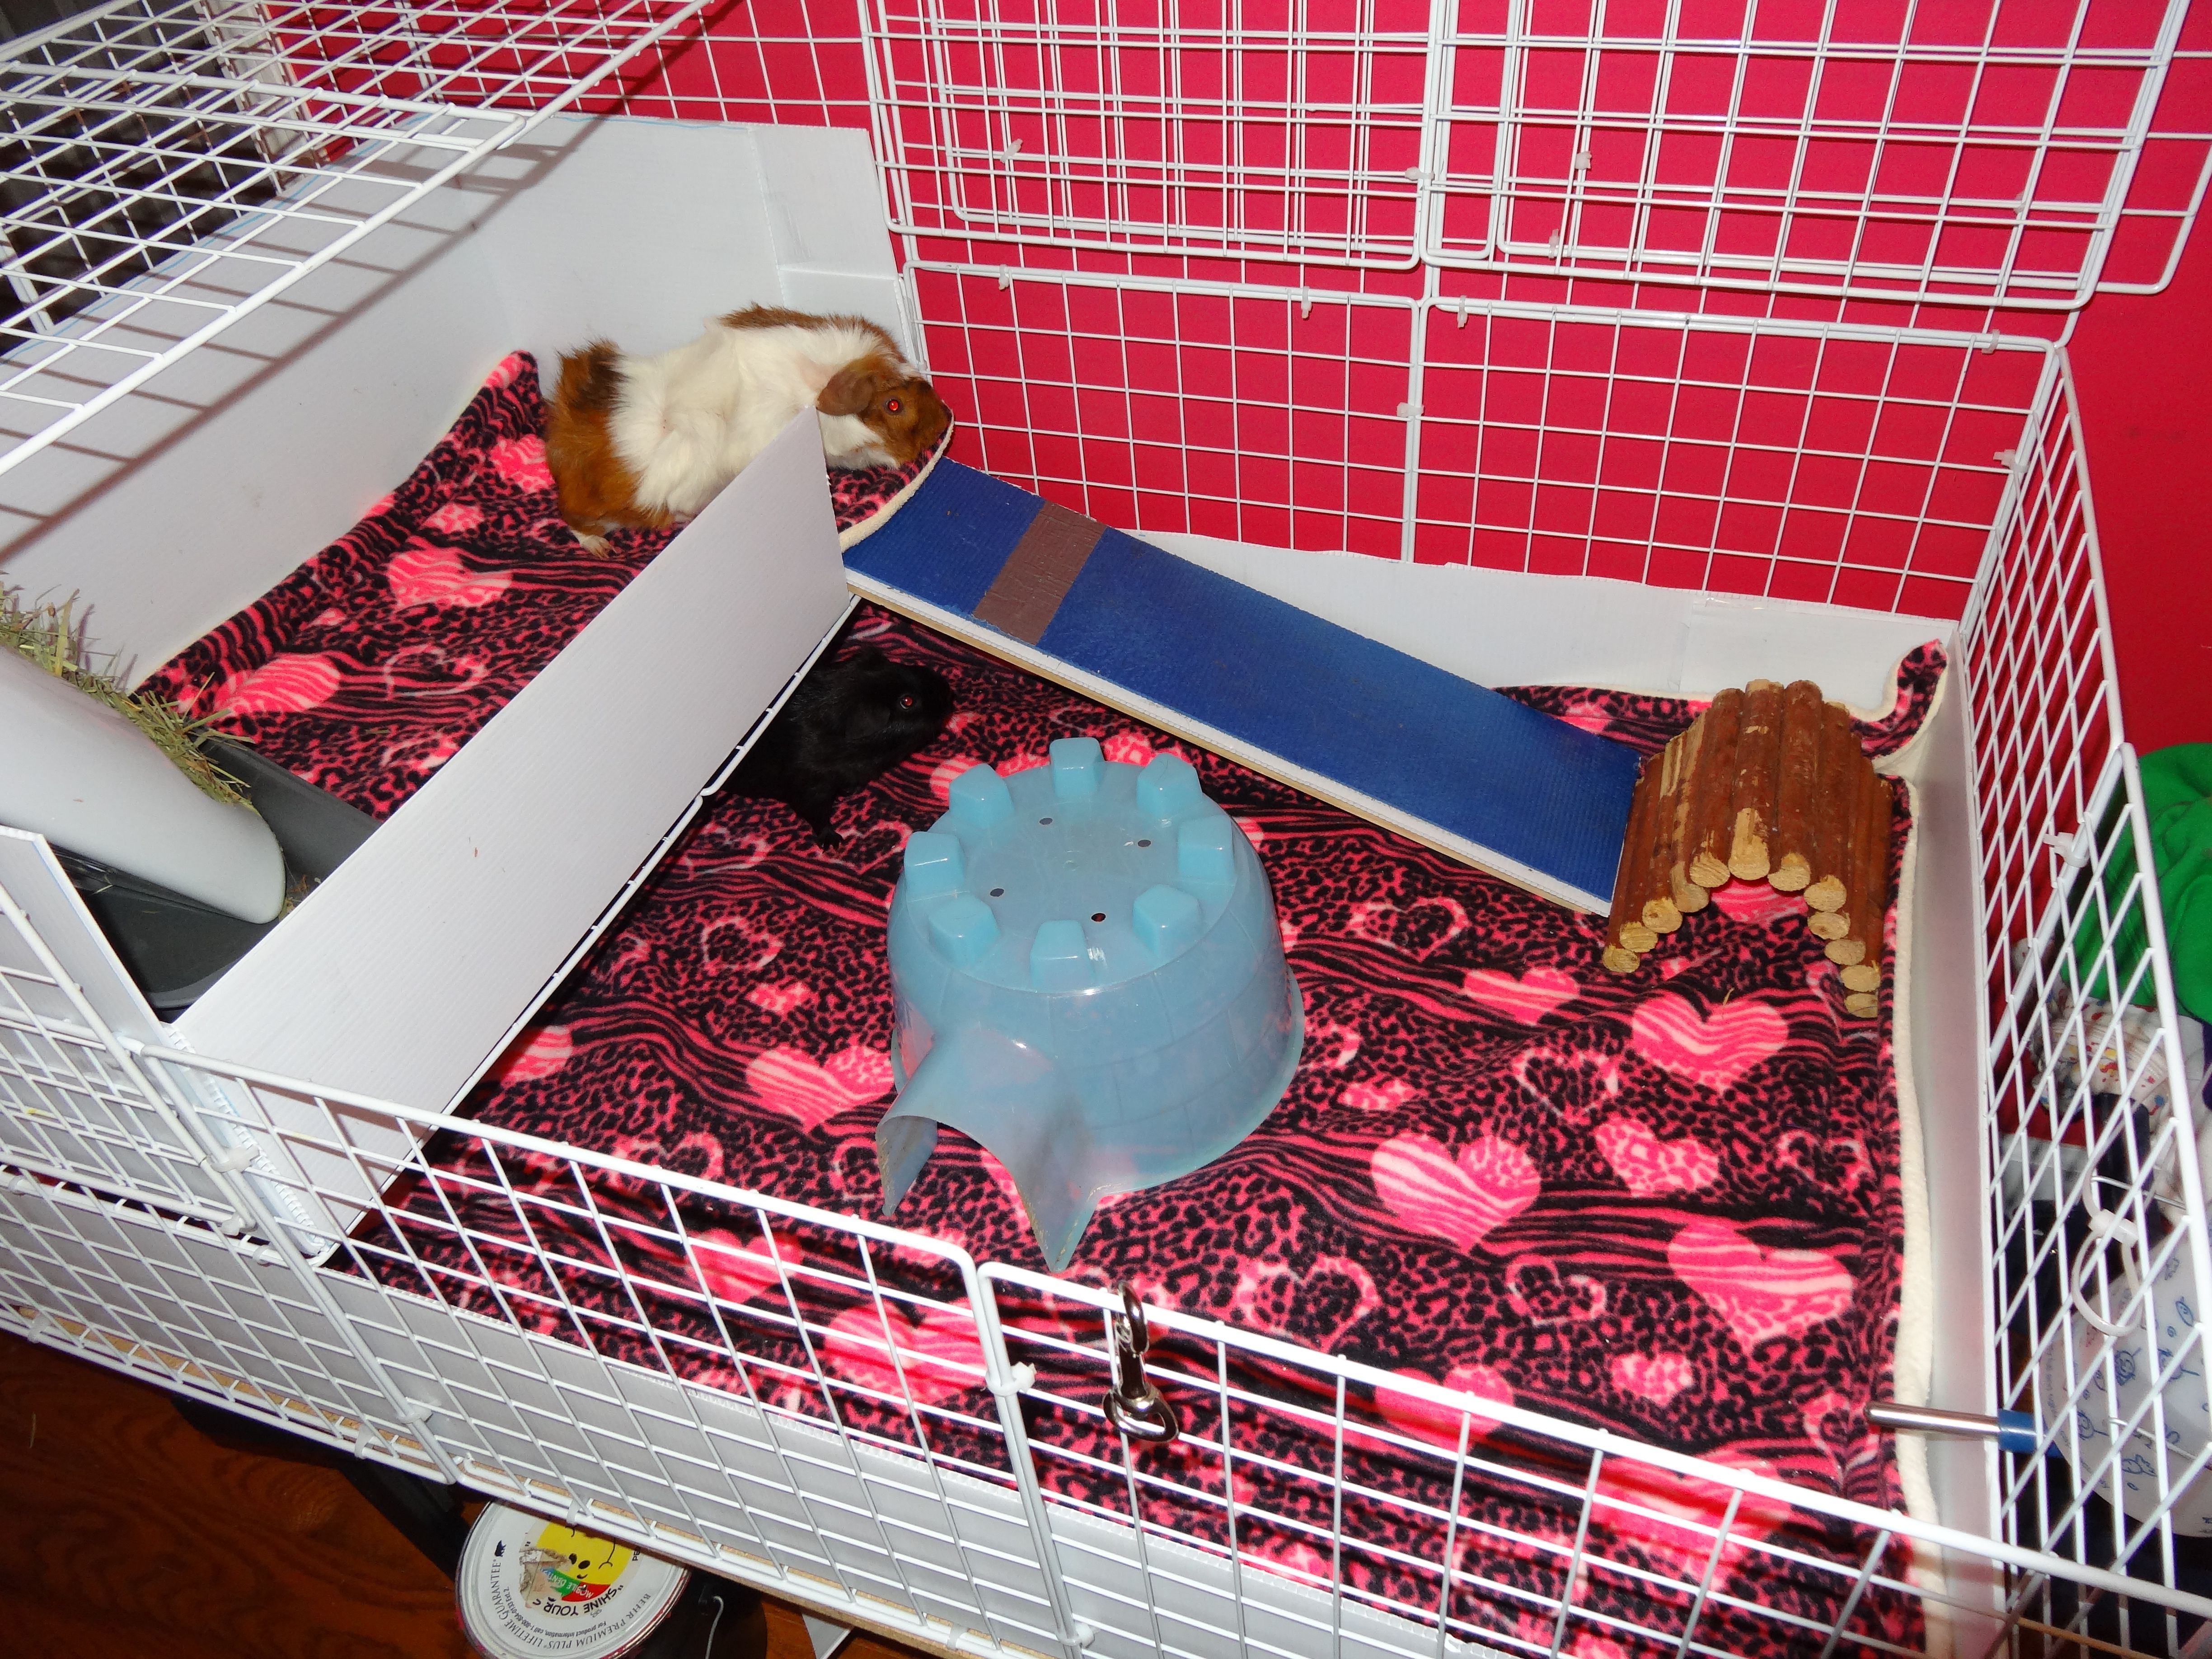 Our cage has a new fleece lining and I lowered the top loft so I the piggies did not have such a steep climb up the ramp.